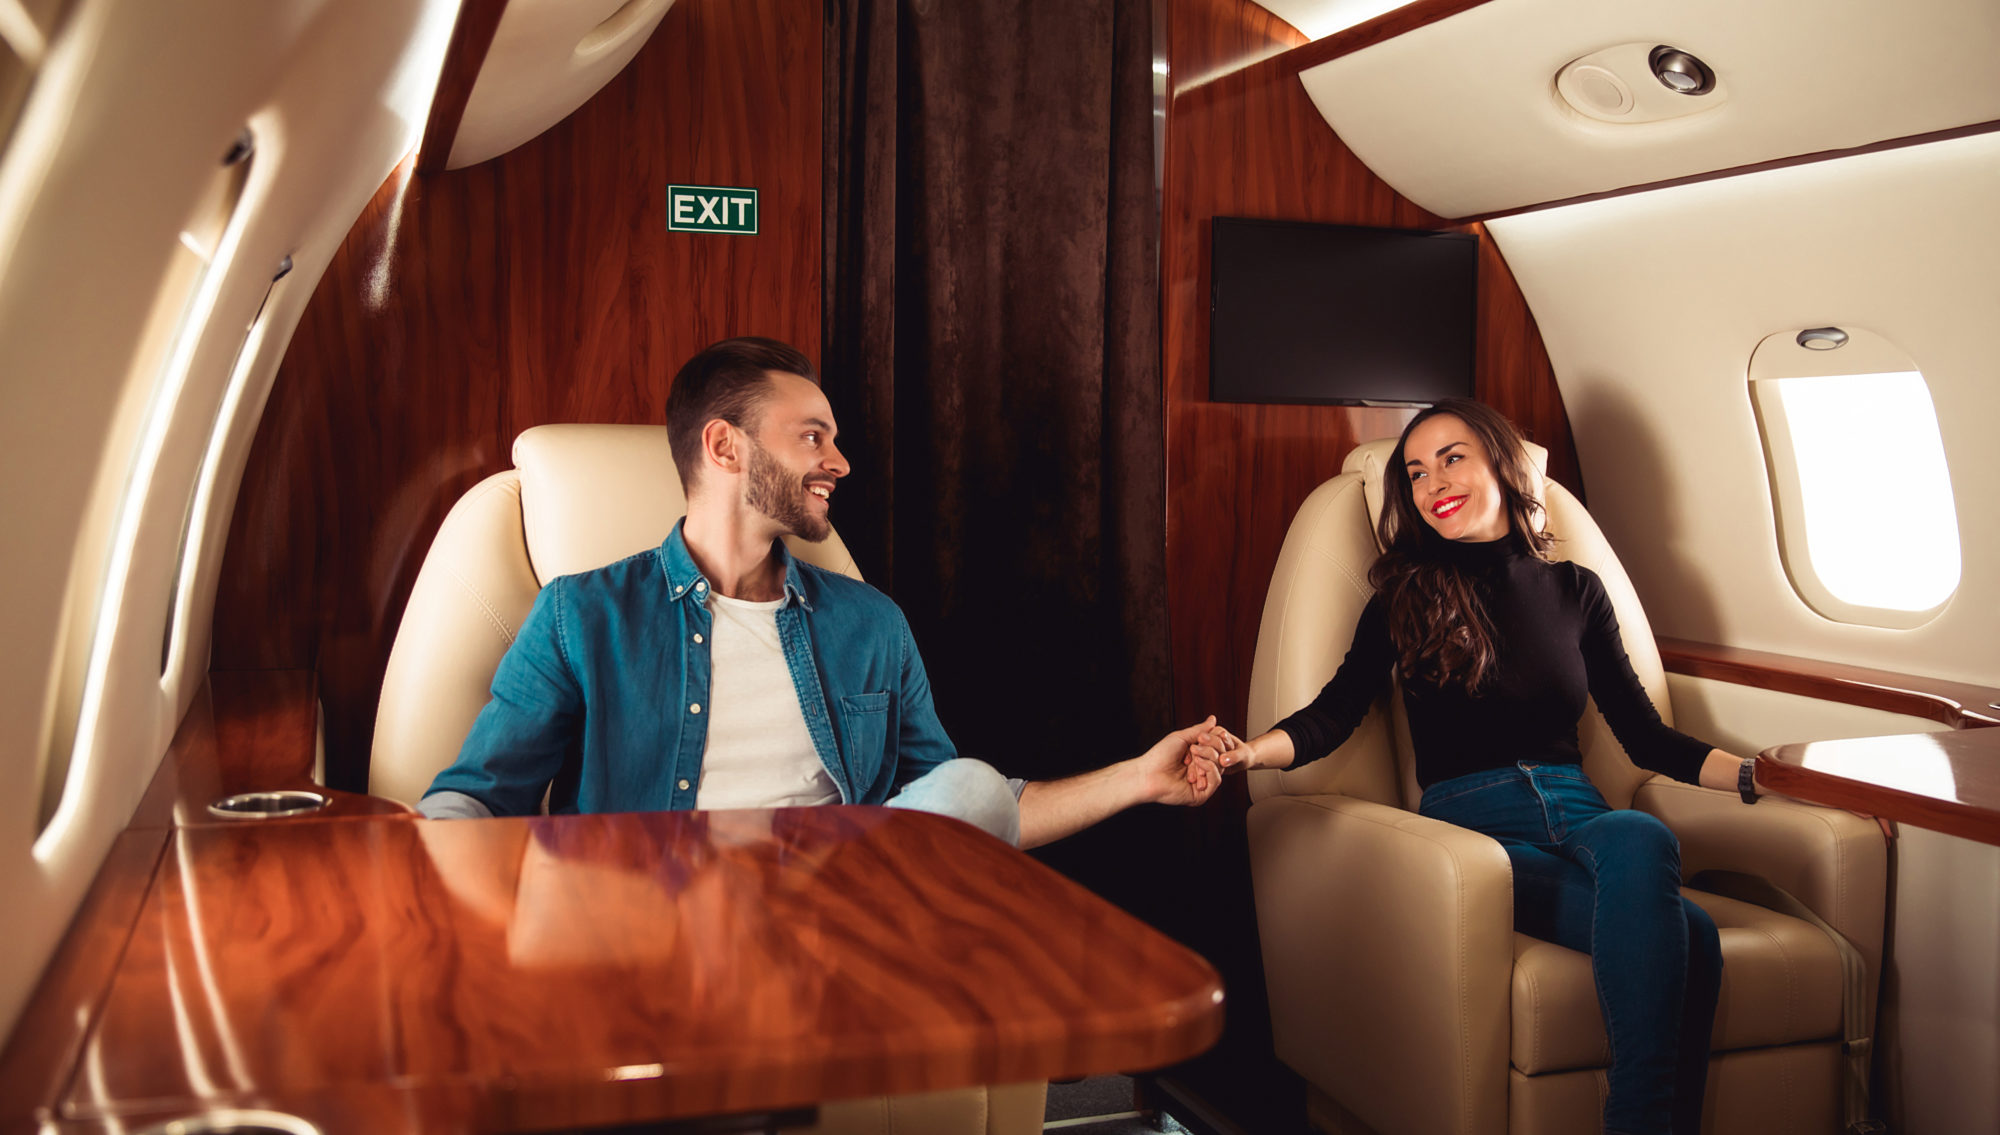 image couple on private jet